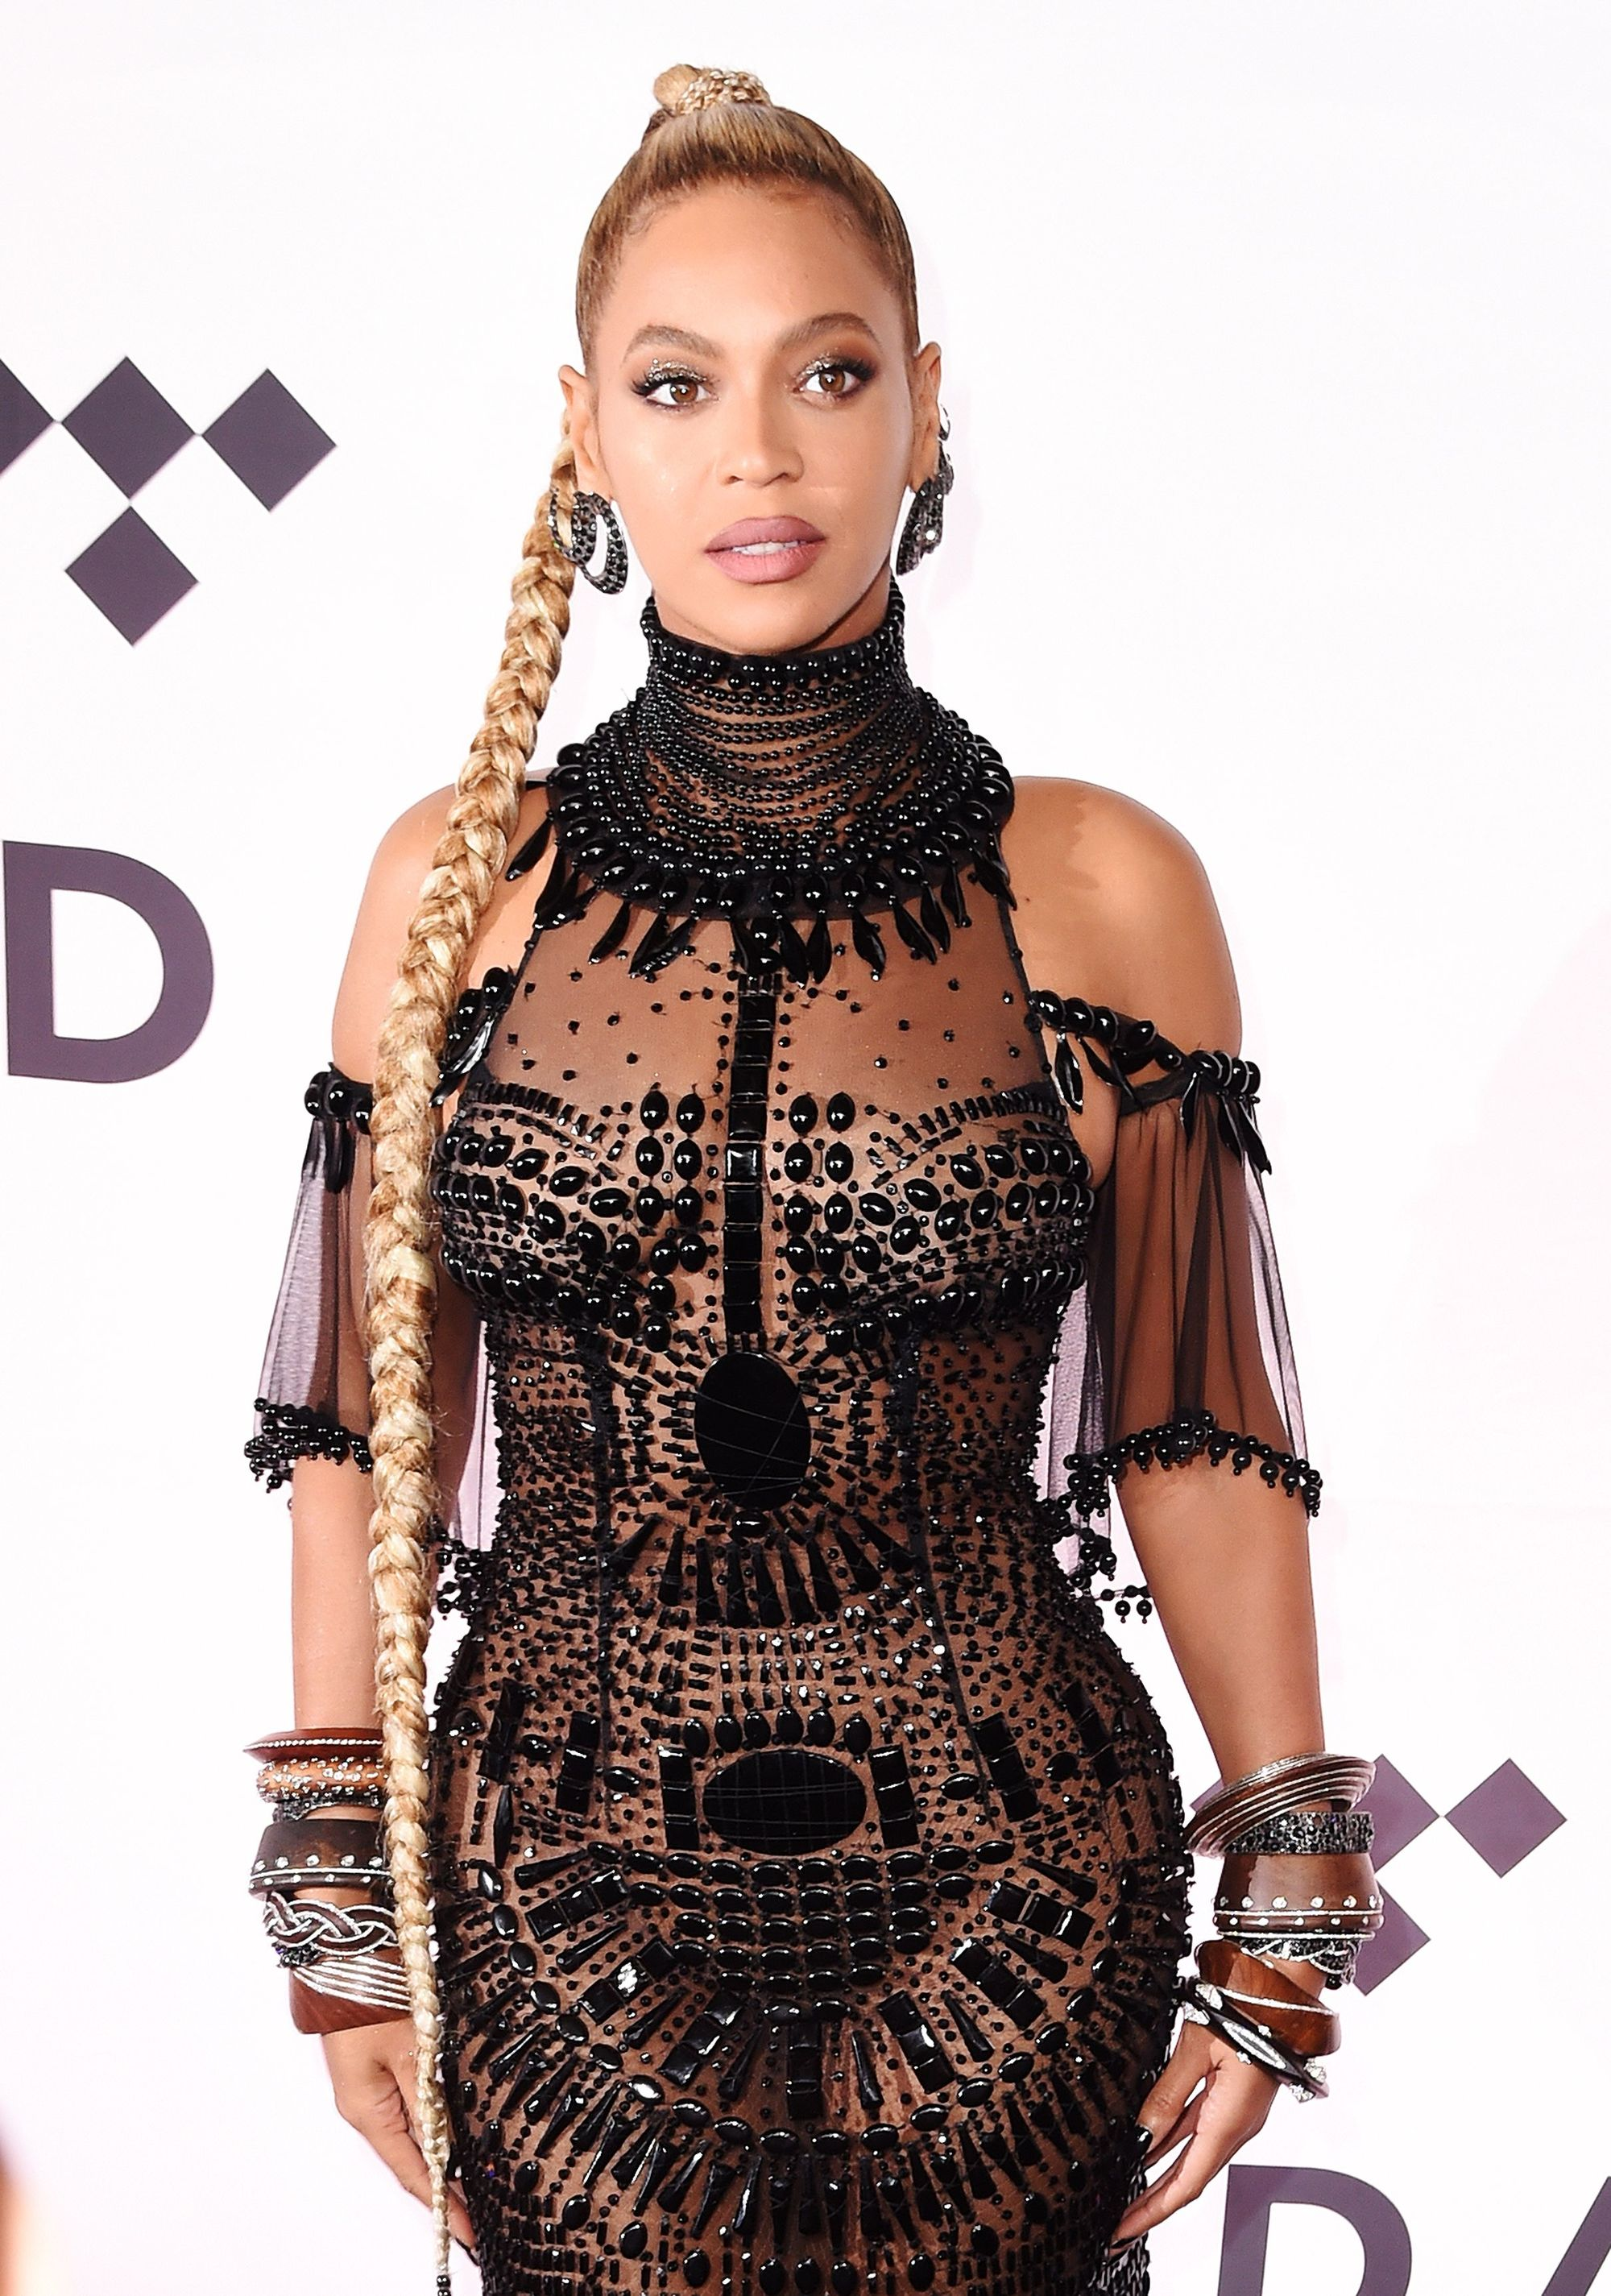 Beyonce with extra long rapunzel blonde hair in high ponytail braid